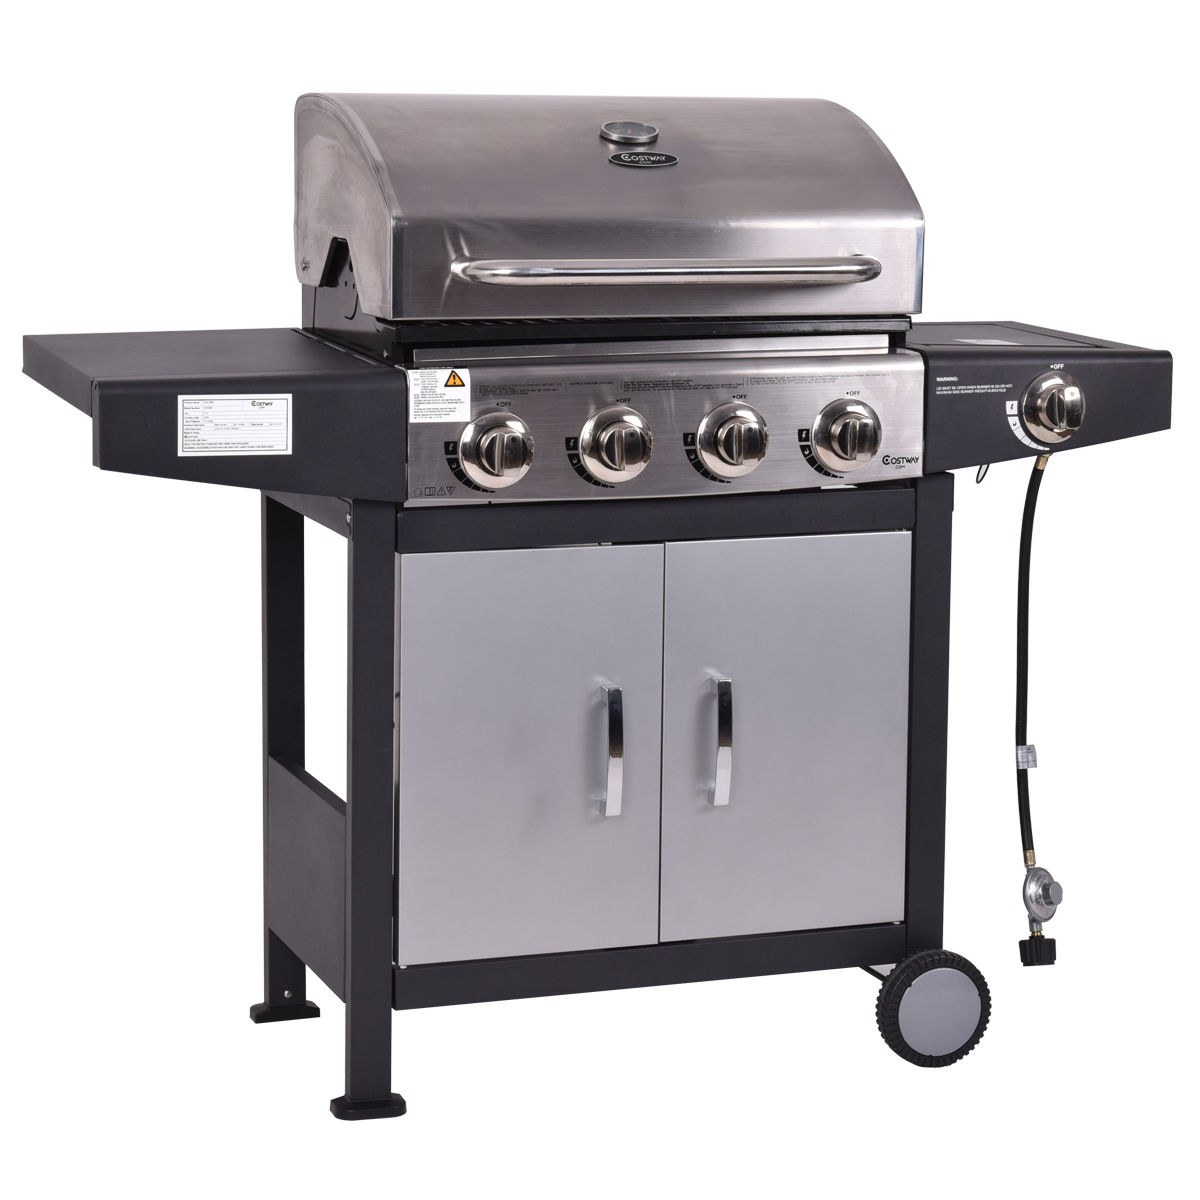 Costway 4 Burner Gas Porpane Grill Stainless Steel Outdoor Patio Cooking BBQ w/ Casters - image 2 of 9